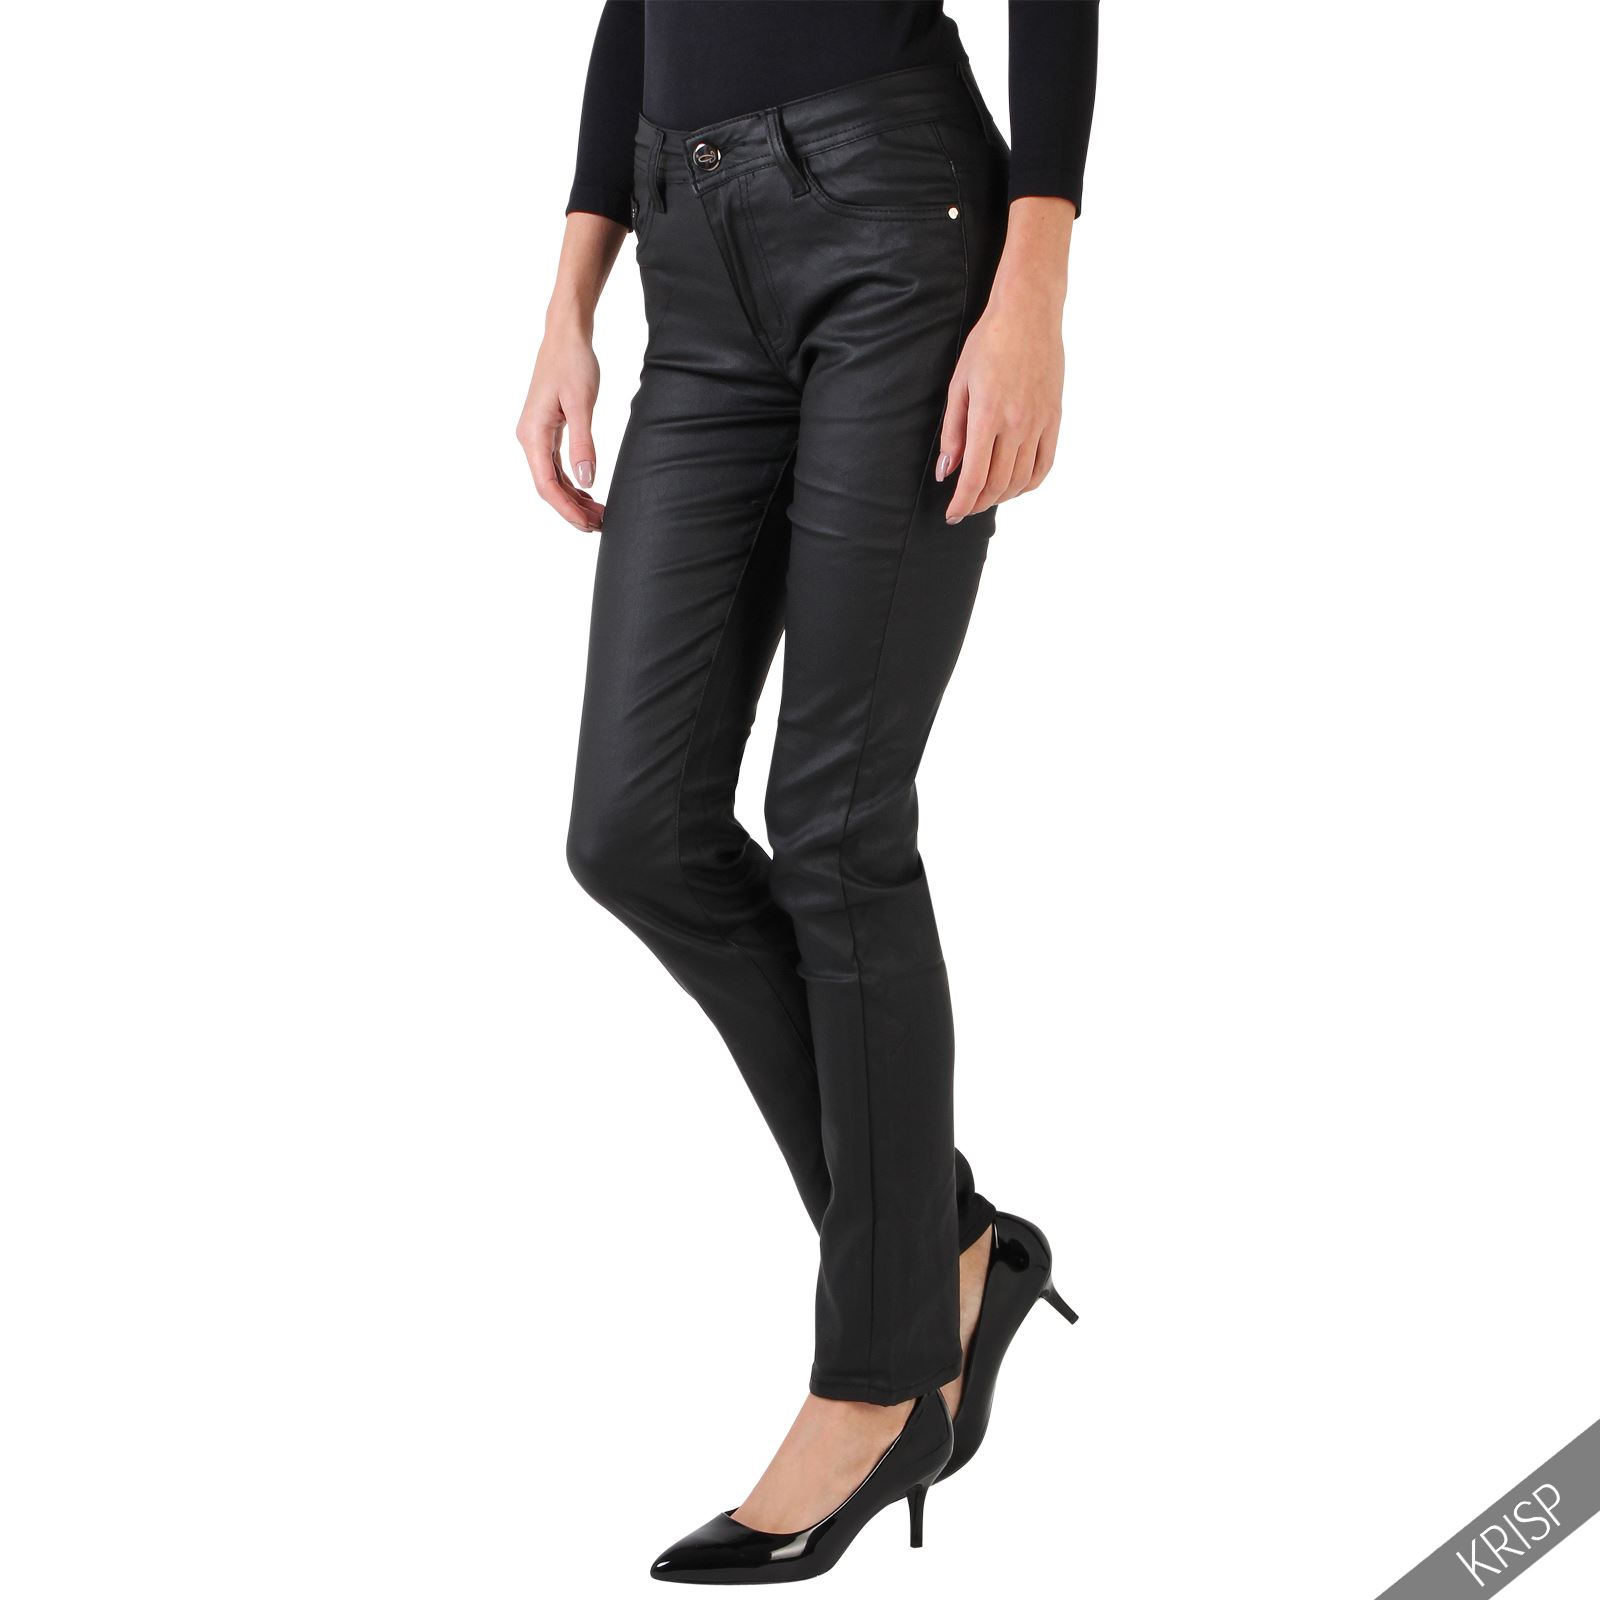 Luxury New Women Leather Pants PU Button Fly With Zipper Pockets Skinny